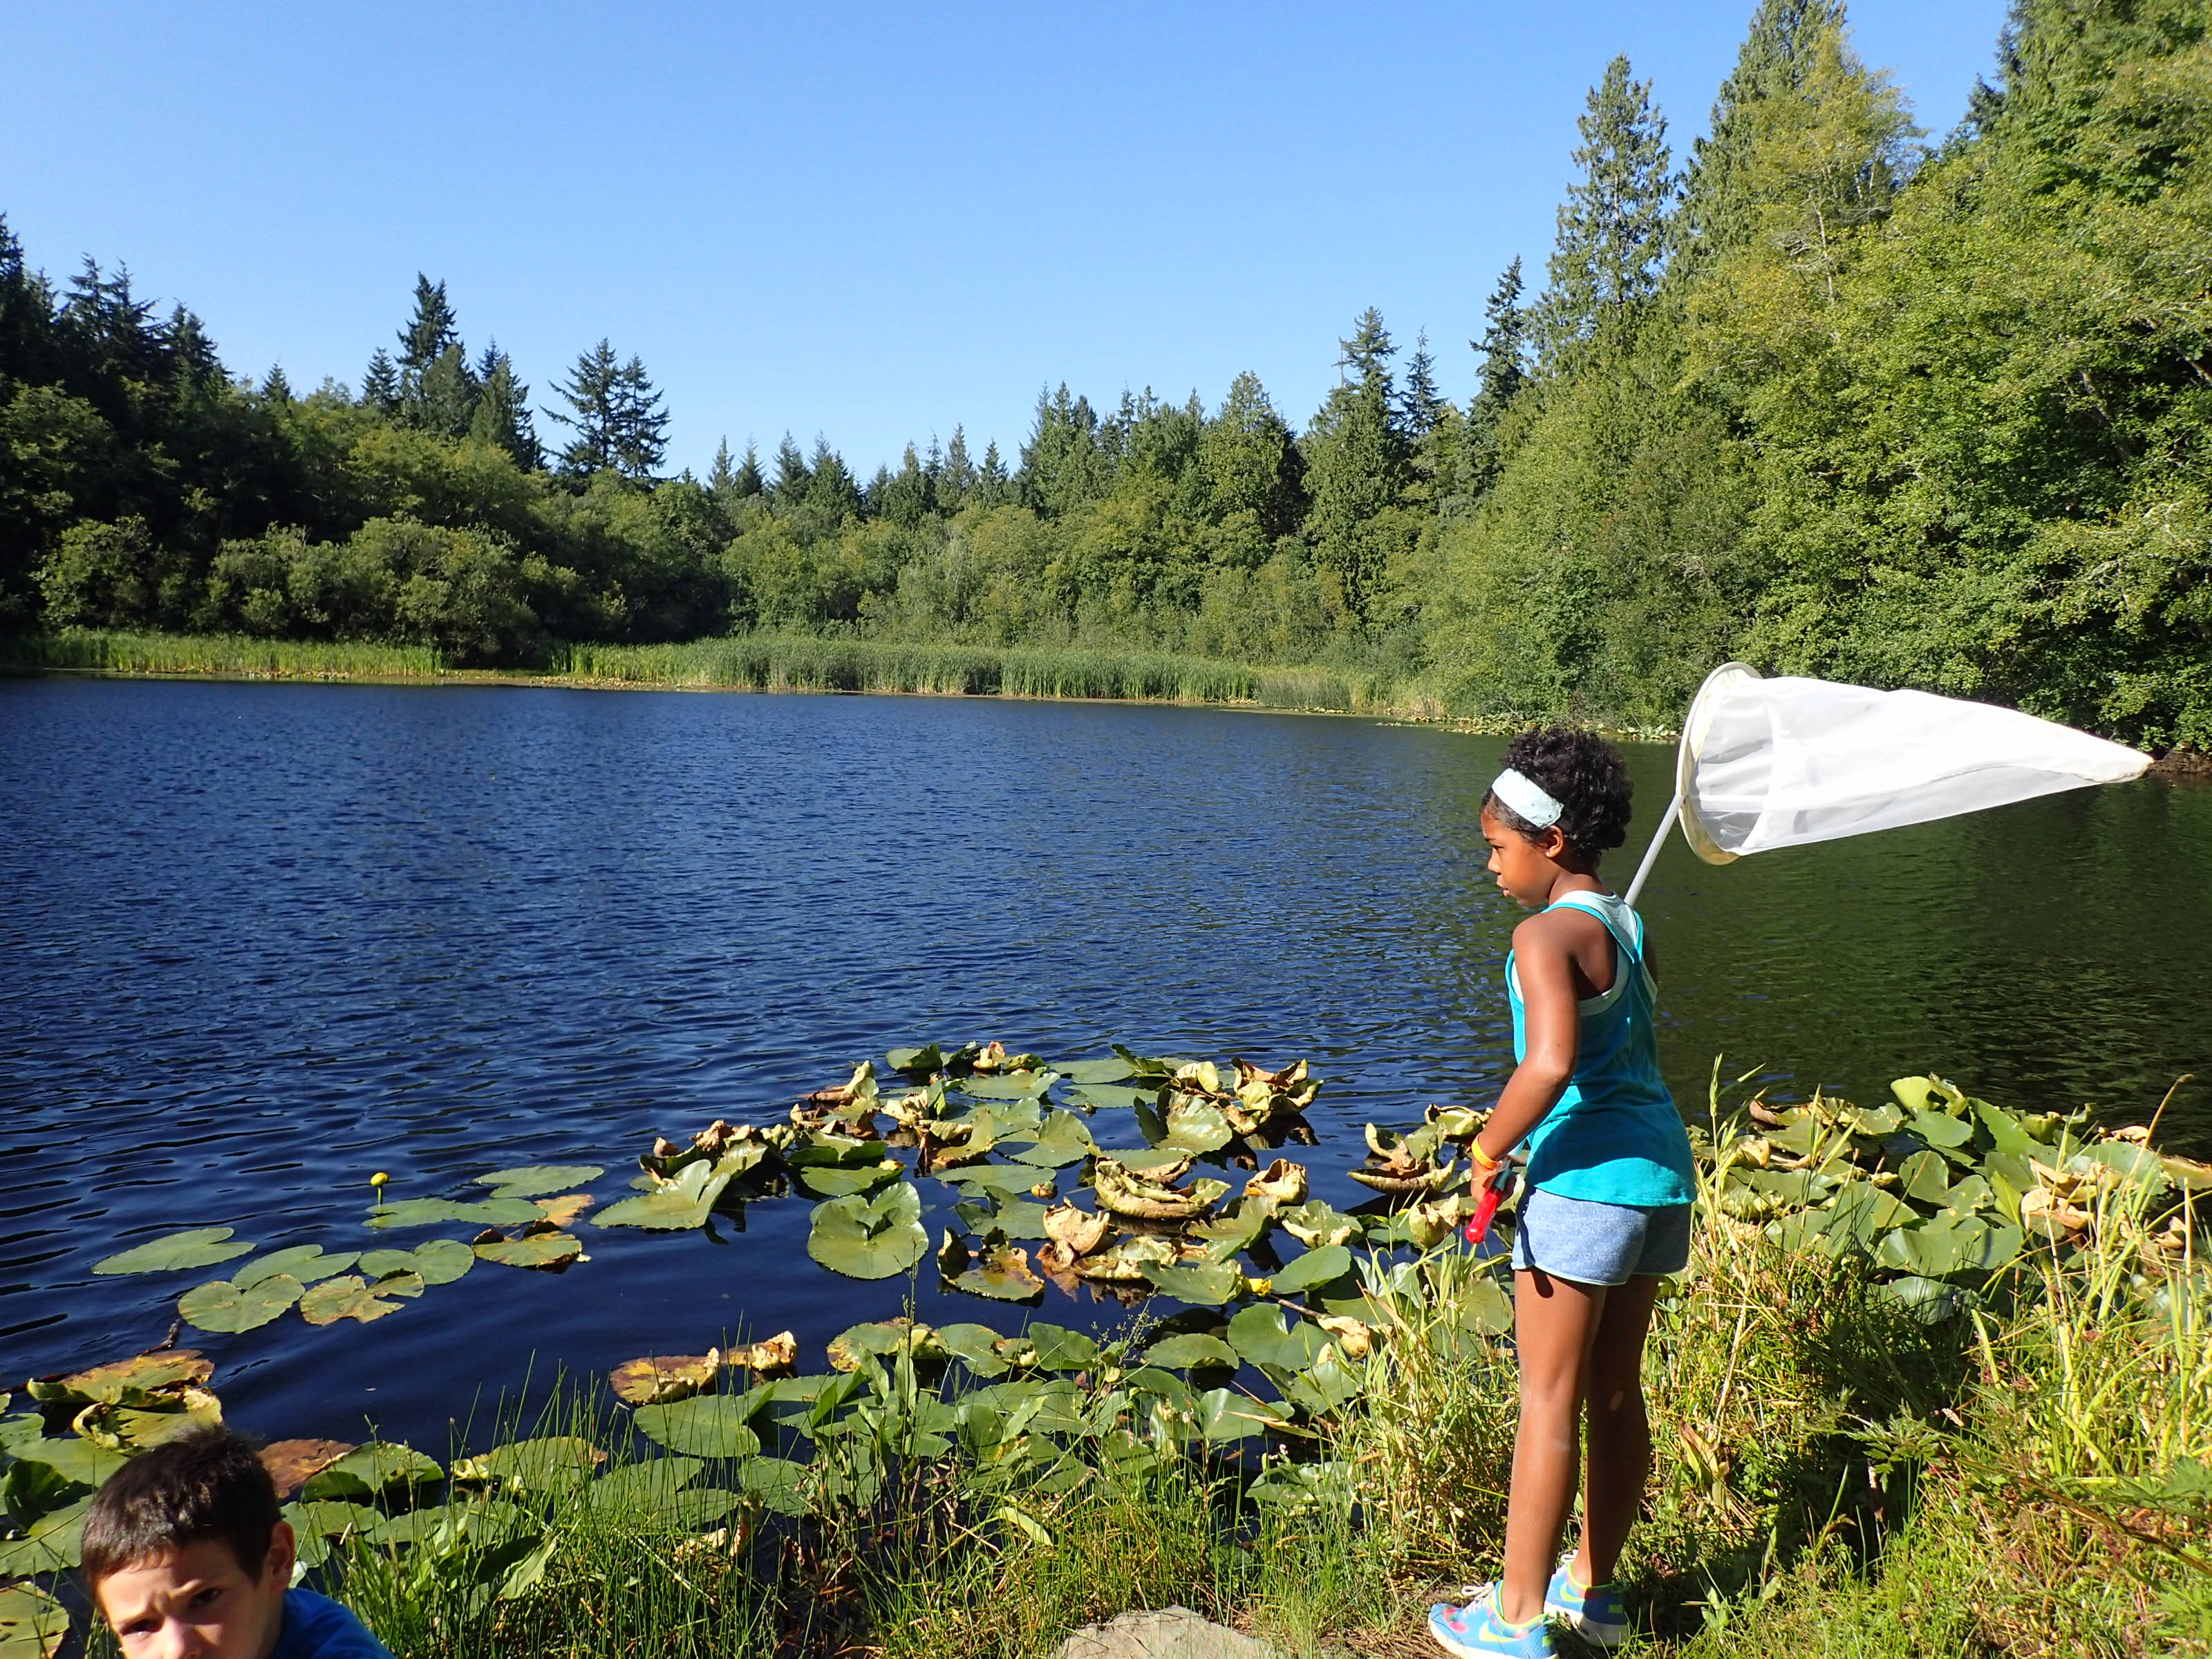 Children explore Mac's Pond on IslandWood's Bainbridge Island campus.